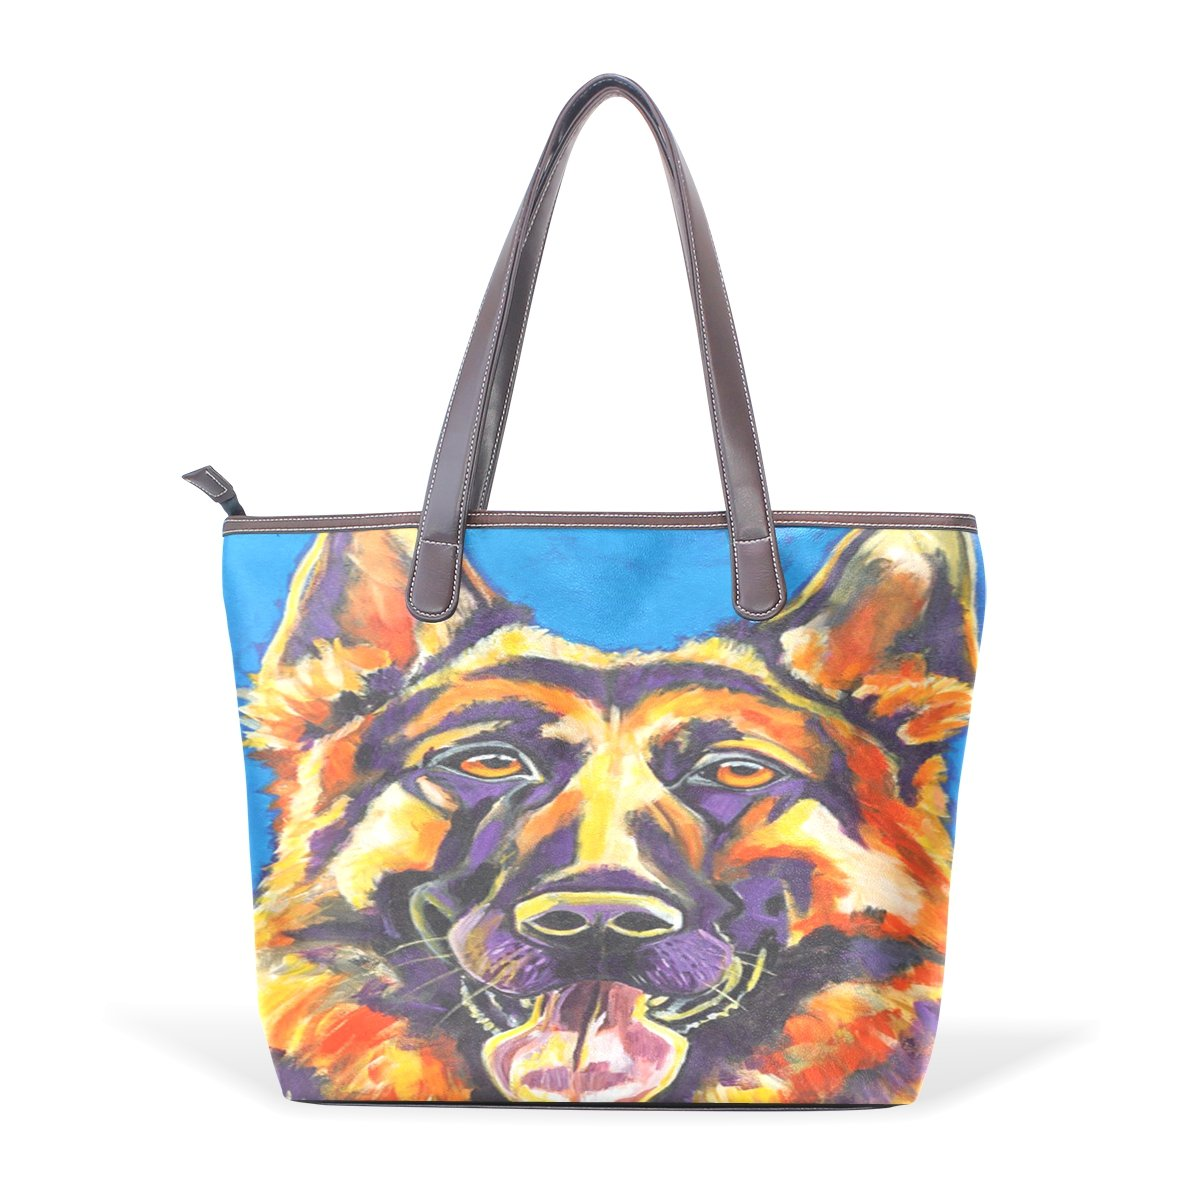 Ye Store Pet Dog Lady PU Leather Handbag Tote Bag Shoulder Bag Shopping Bag